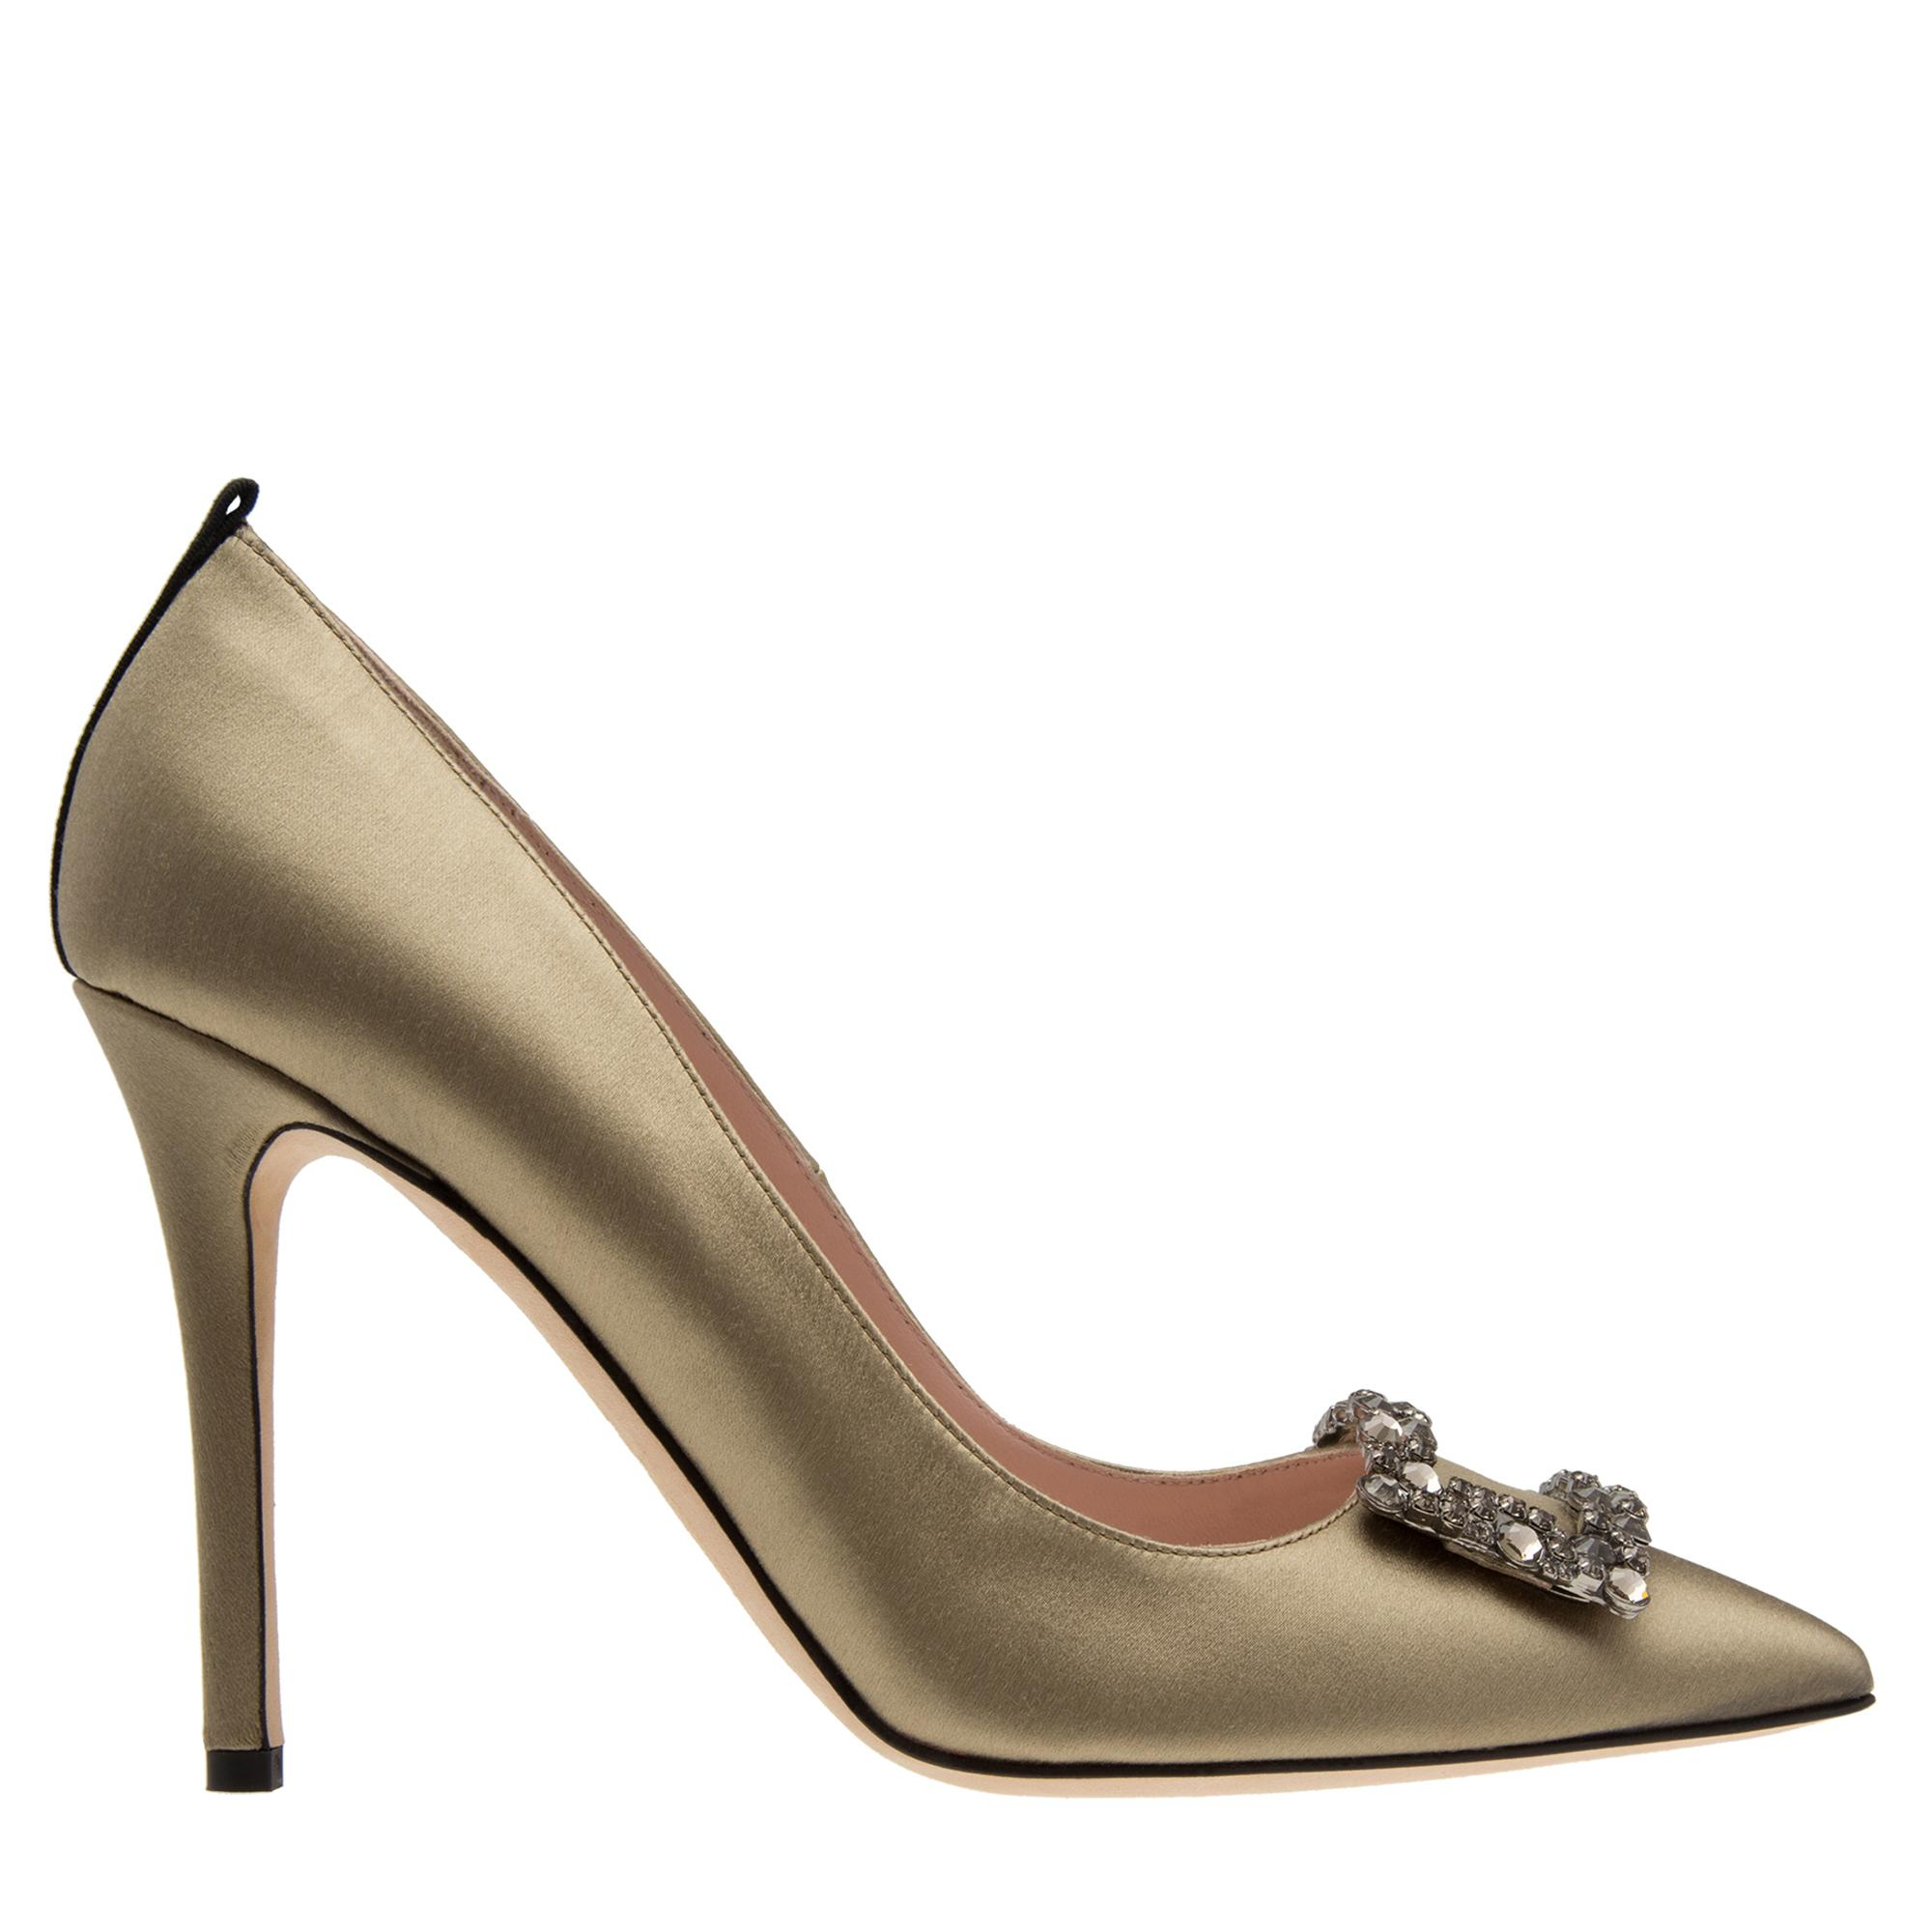 Mary pumps